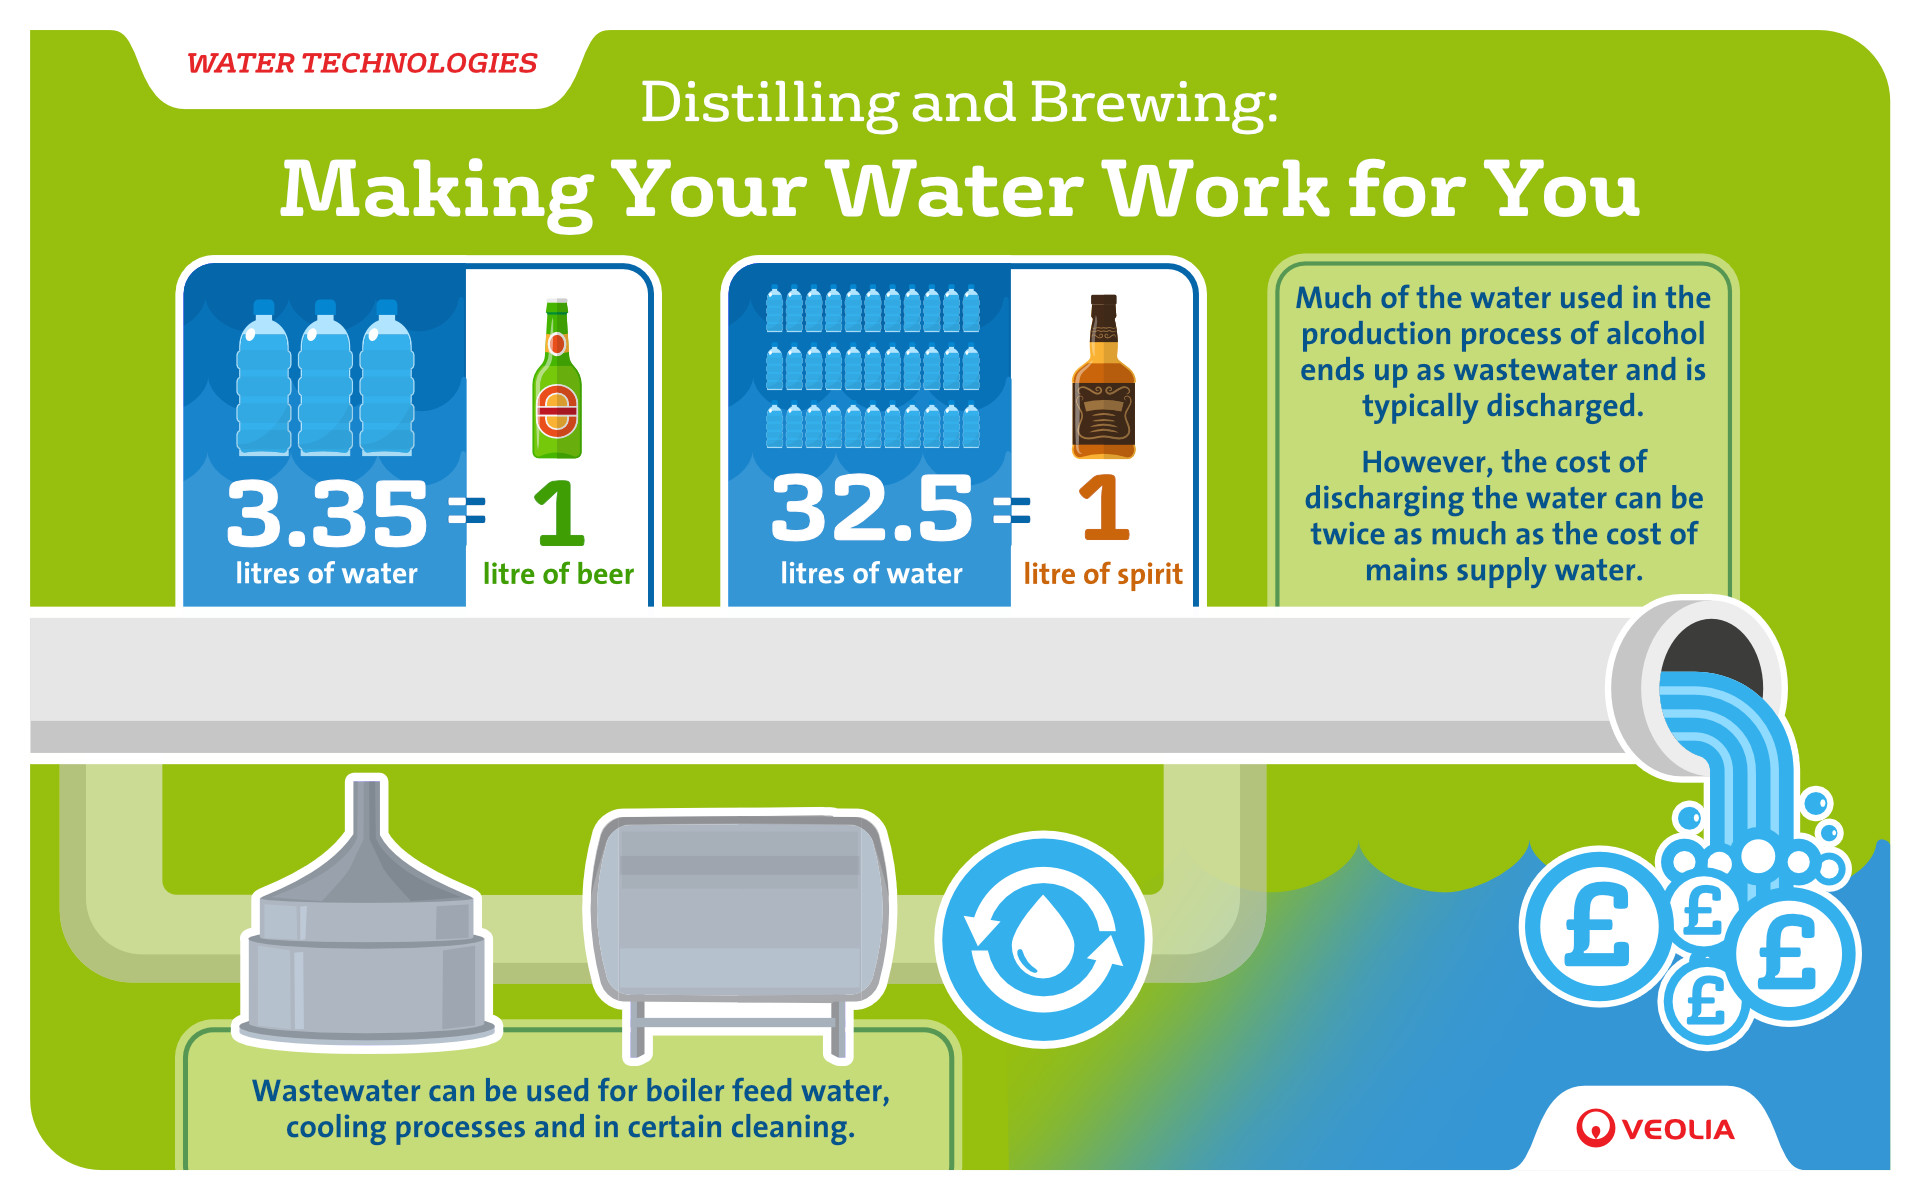 Veolia_DistillingAndBrewing_Infographic_FINAL